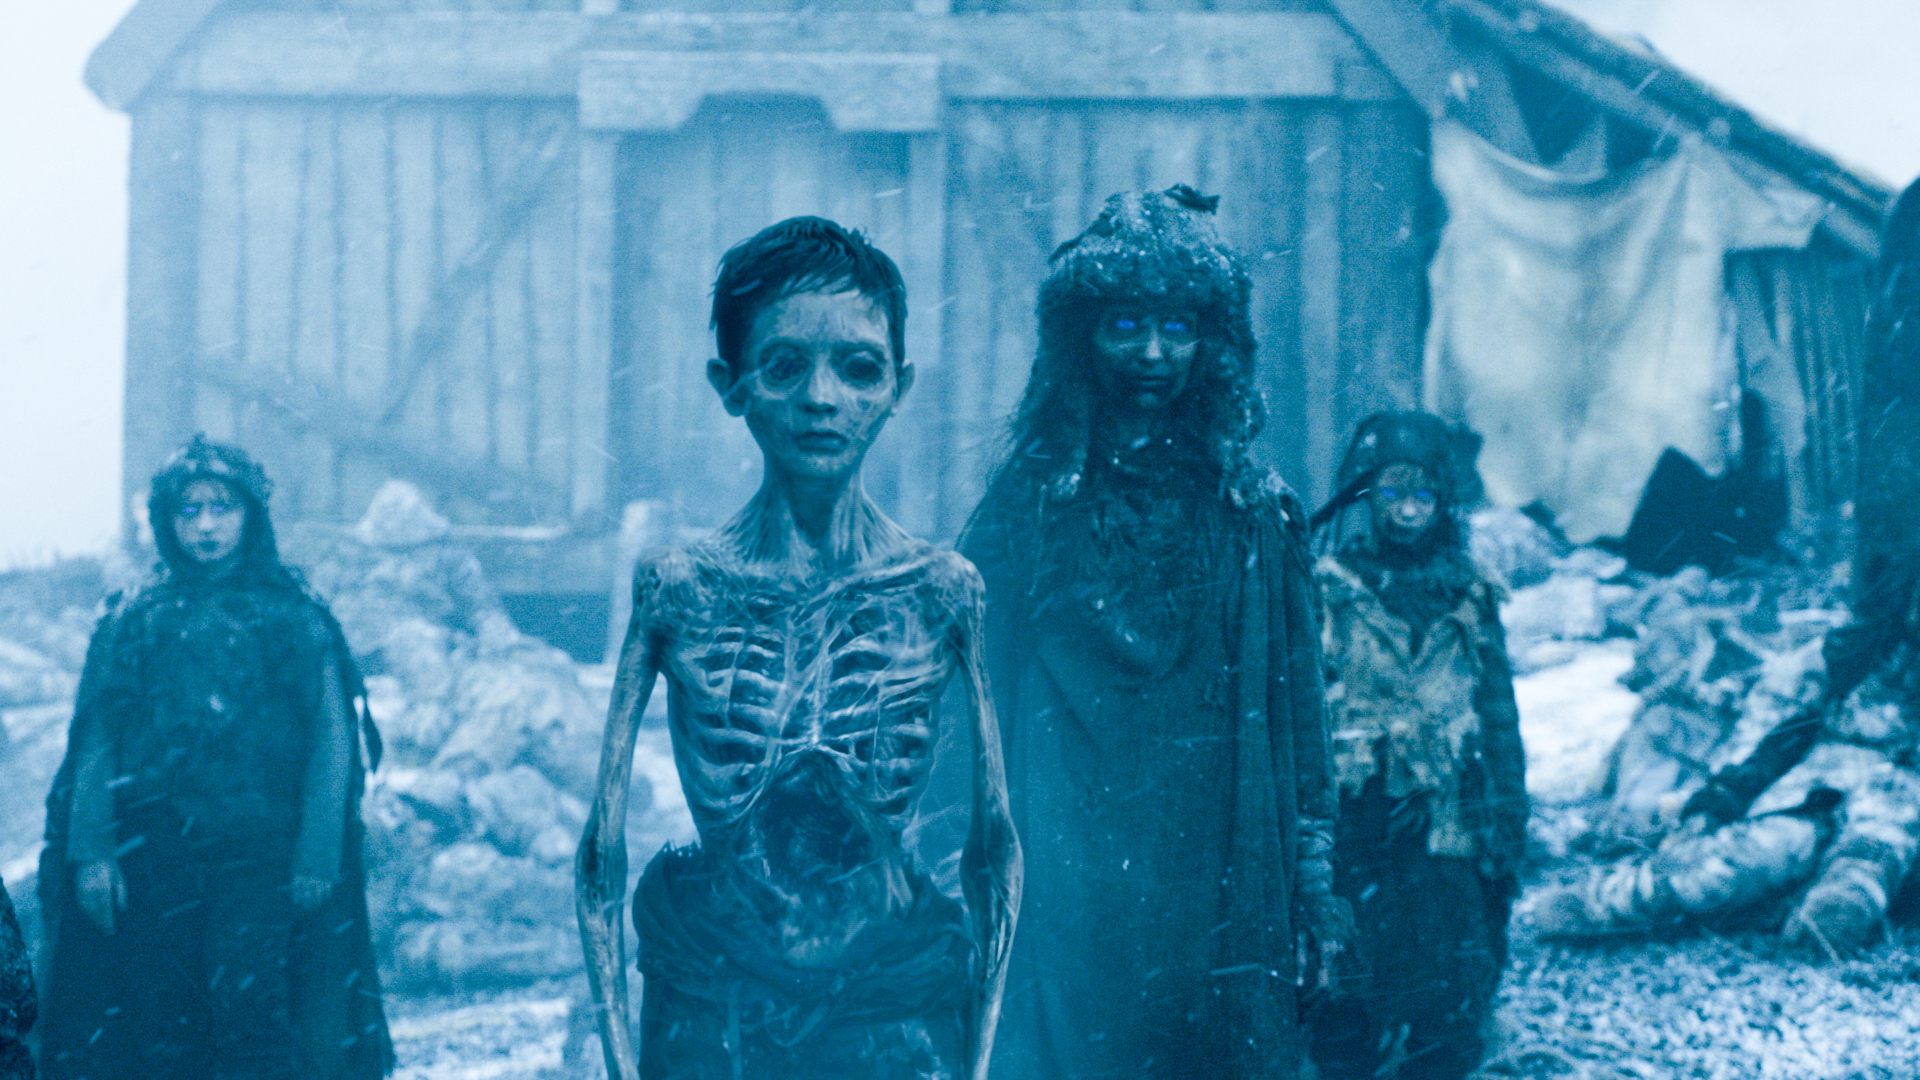 Can the dead Starks in the Winterfell crypts really rise when the Night King comes?